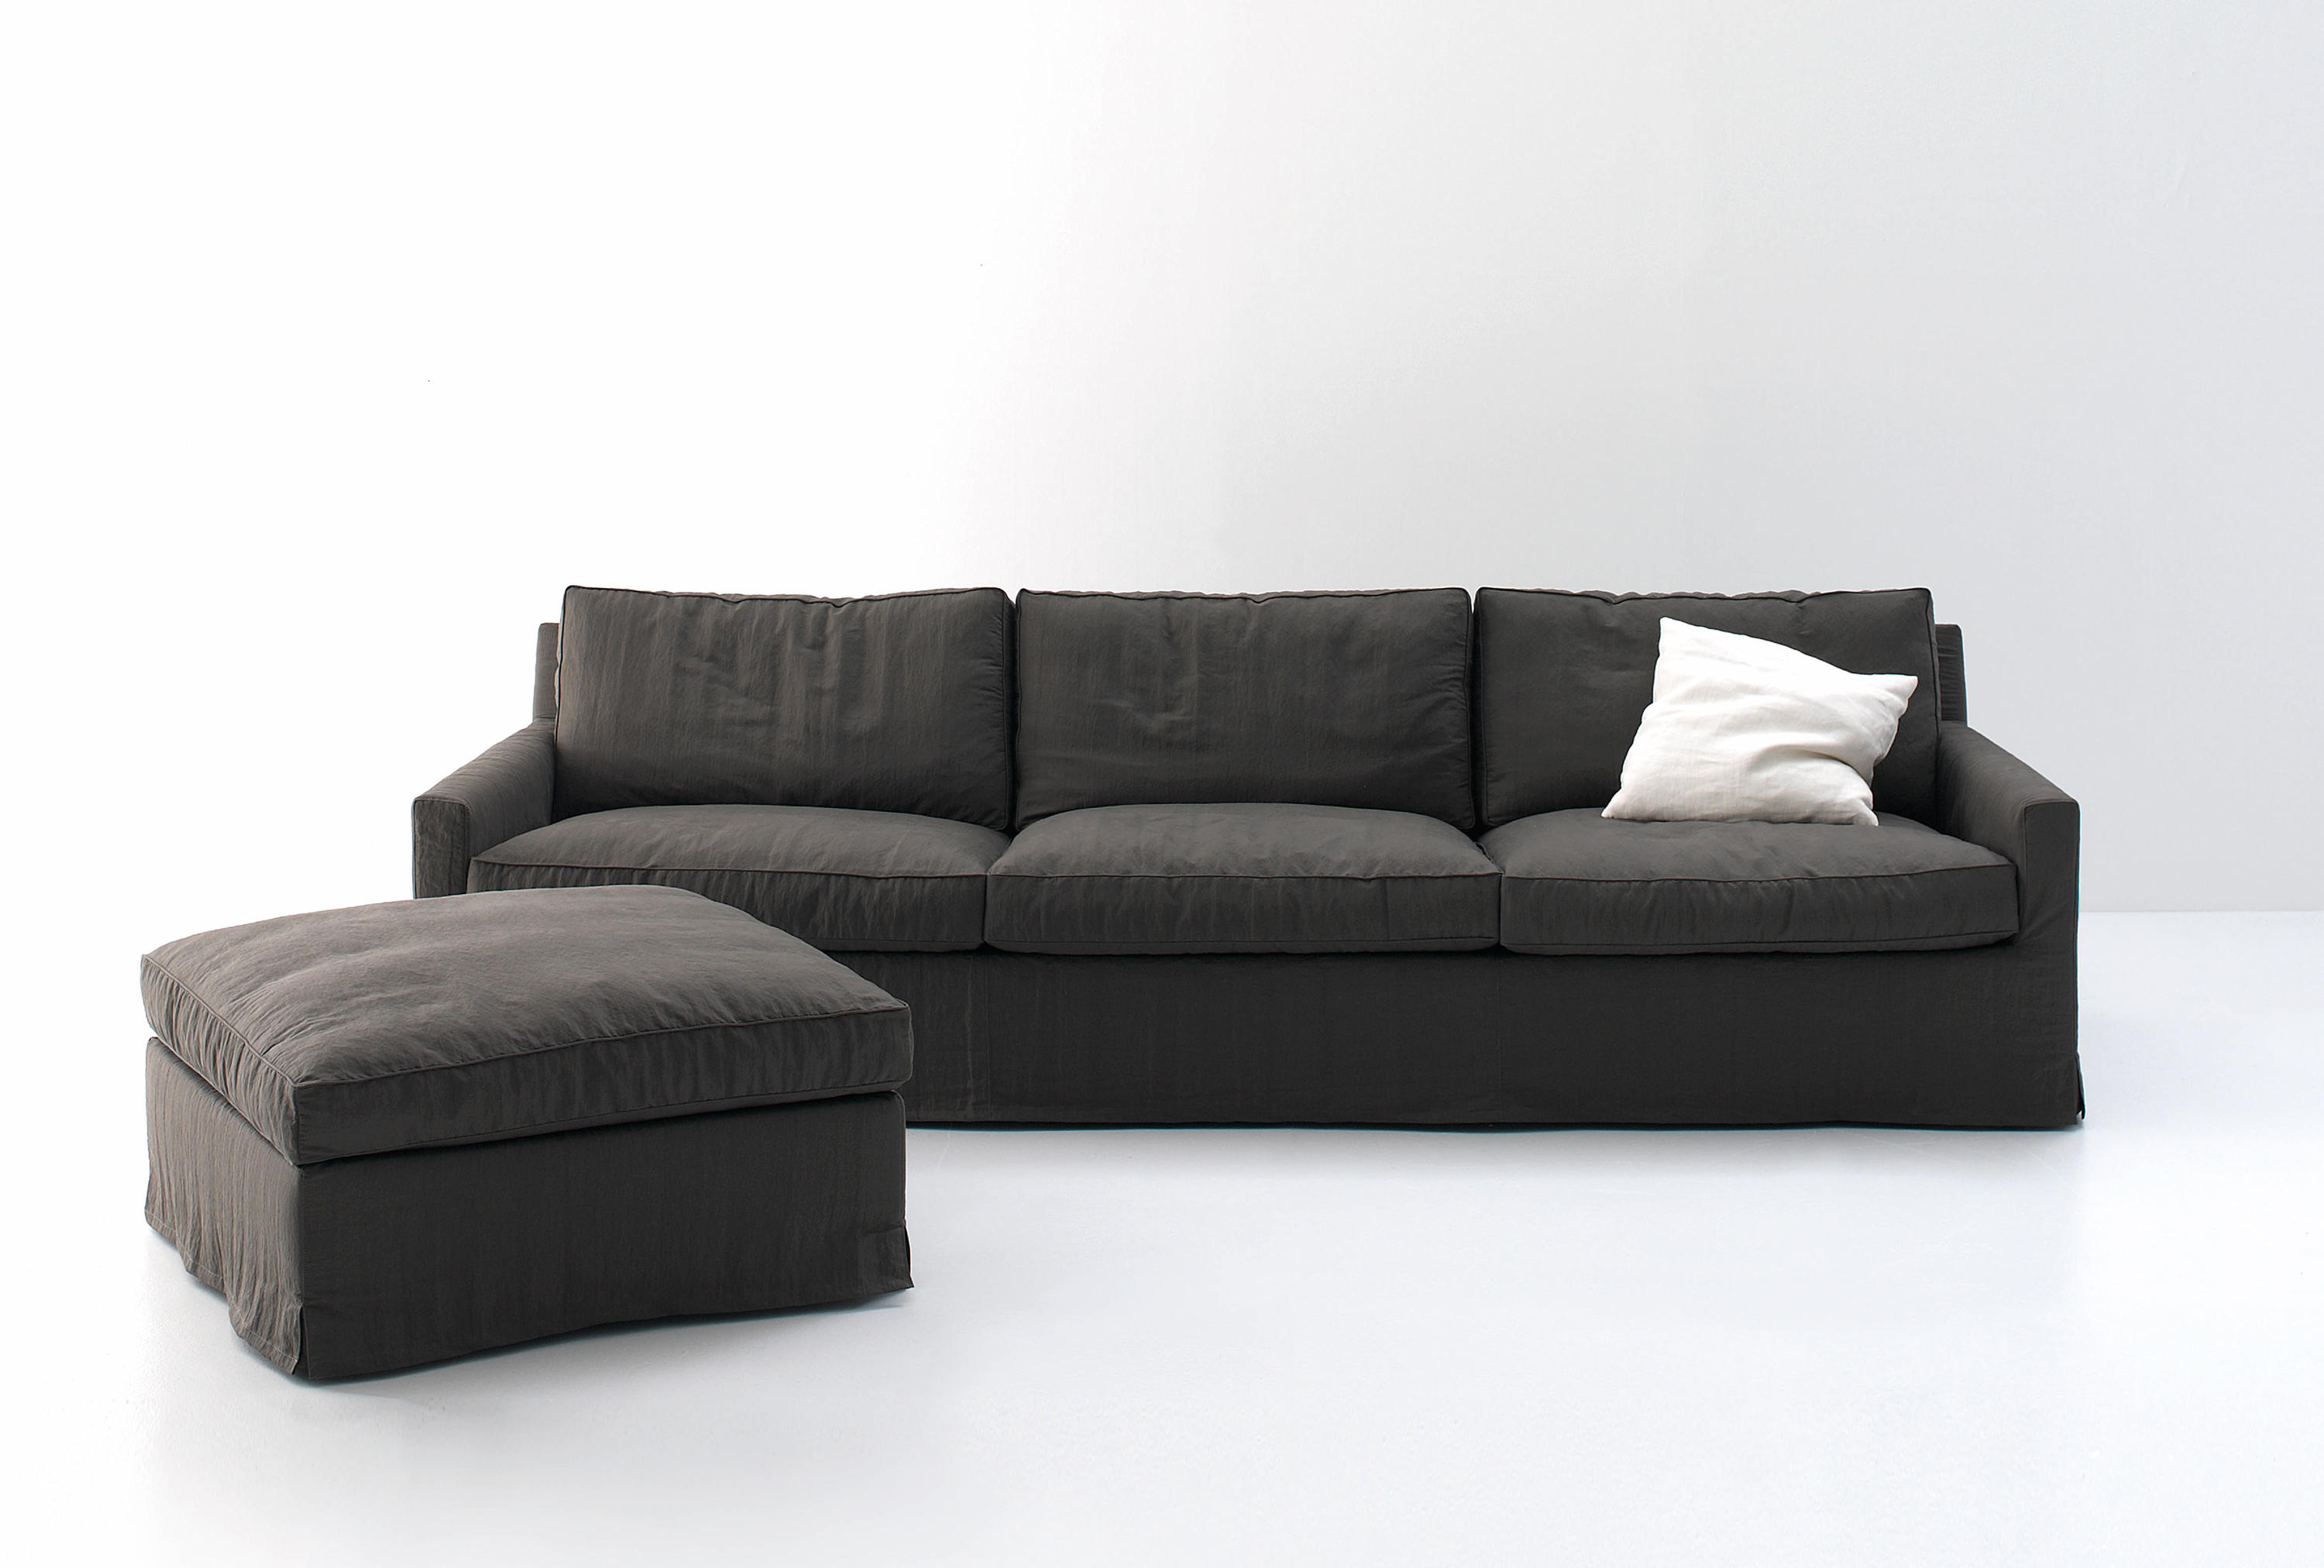 COUSY SOFA Lounge sofas from ARFLEX